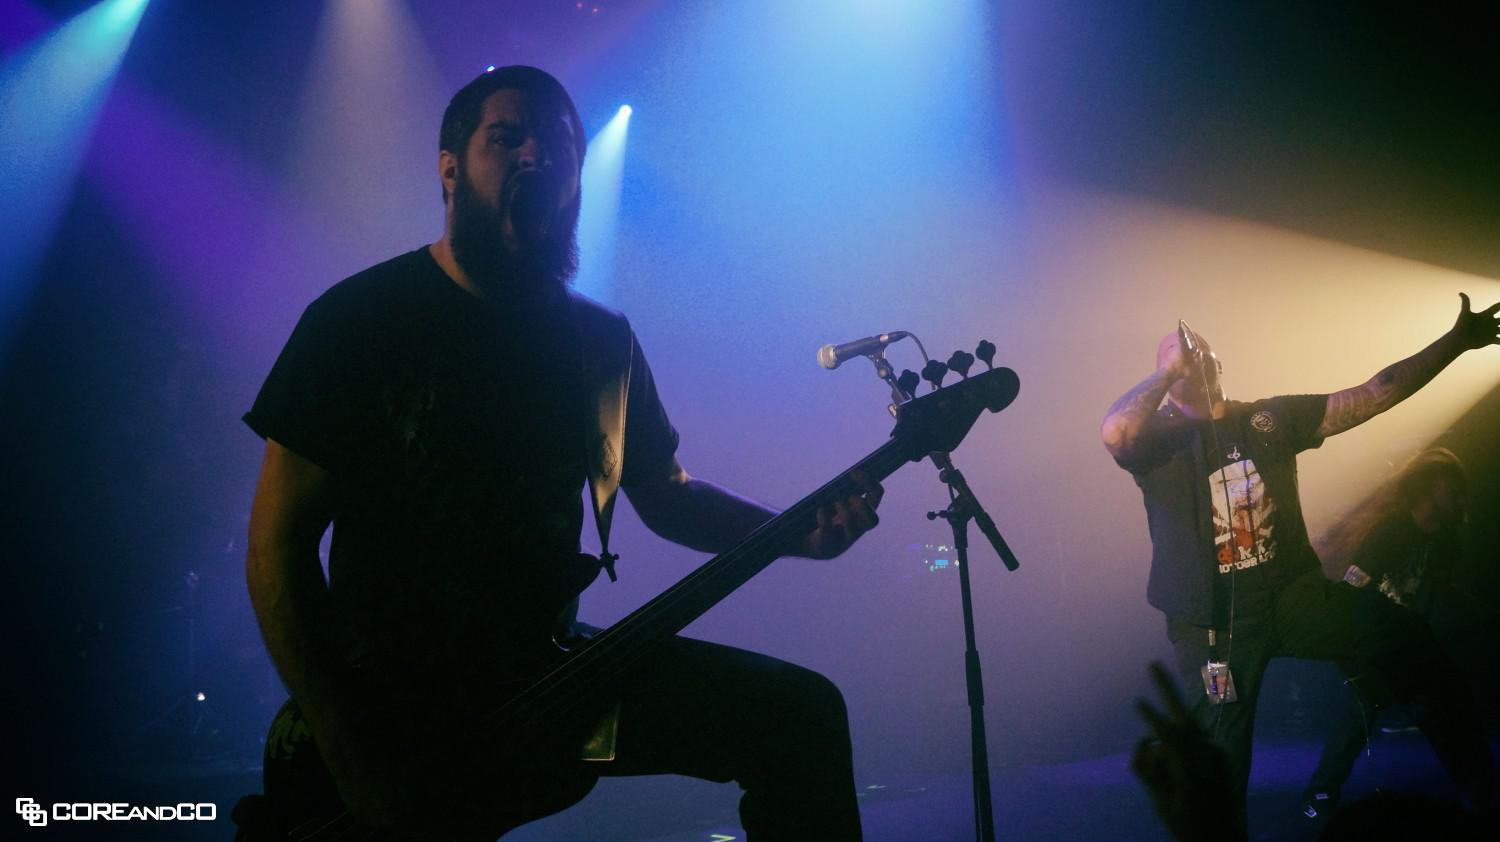 Benighted + Hypno5e + Leng Tch'e - photo4